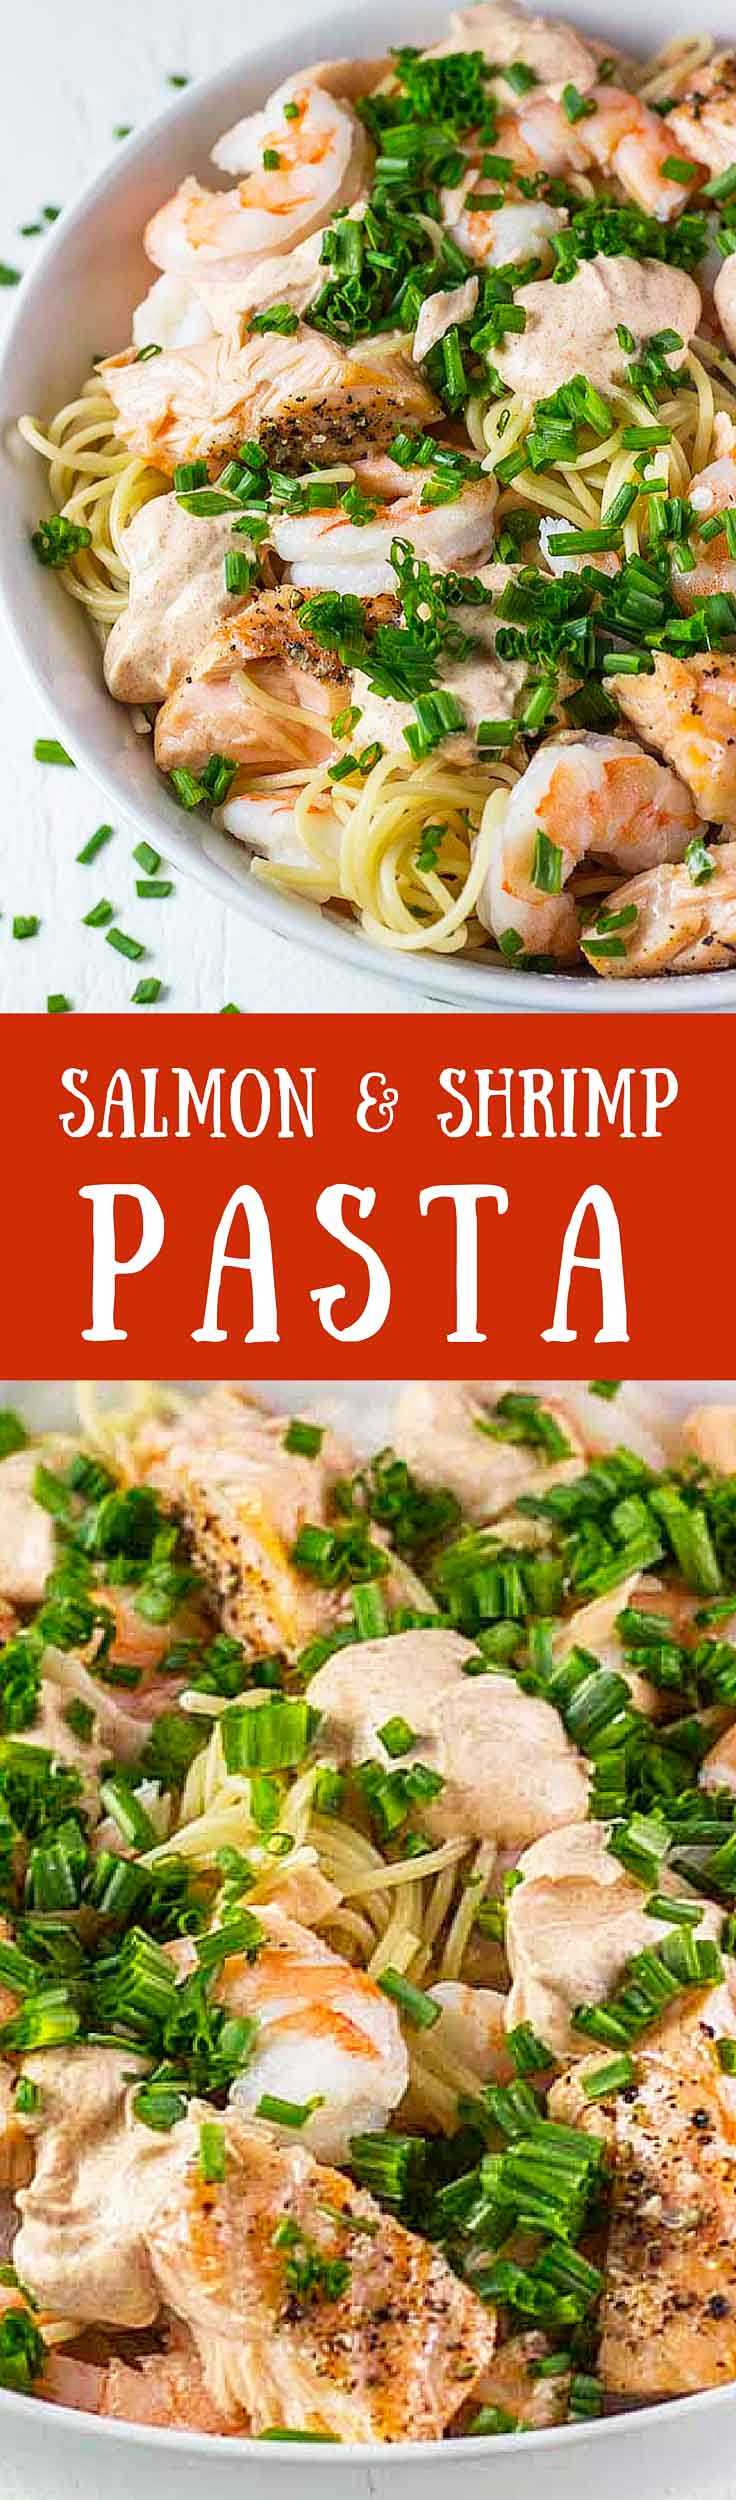 This Salmon Shrimp Pasta Is My Favorite Easy And Healthy Recipe It Takes